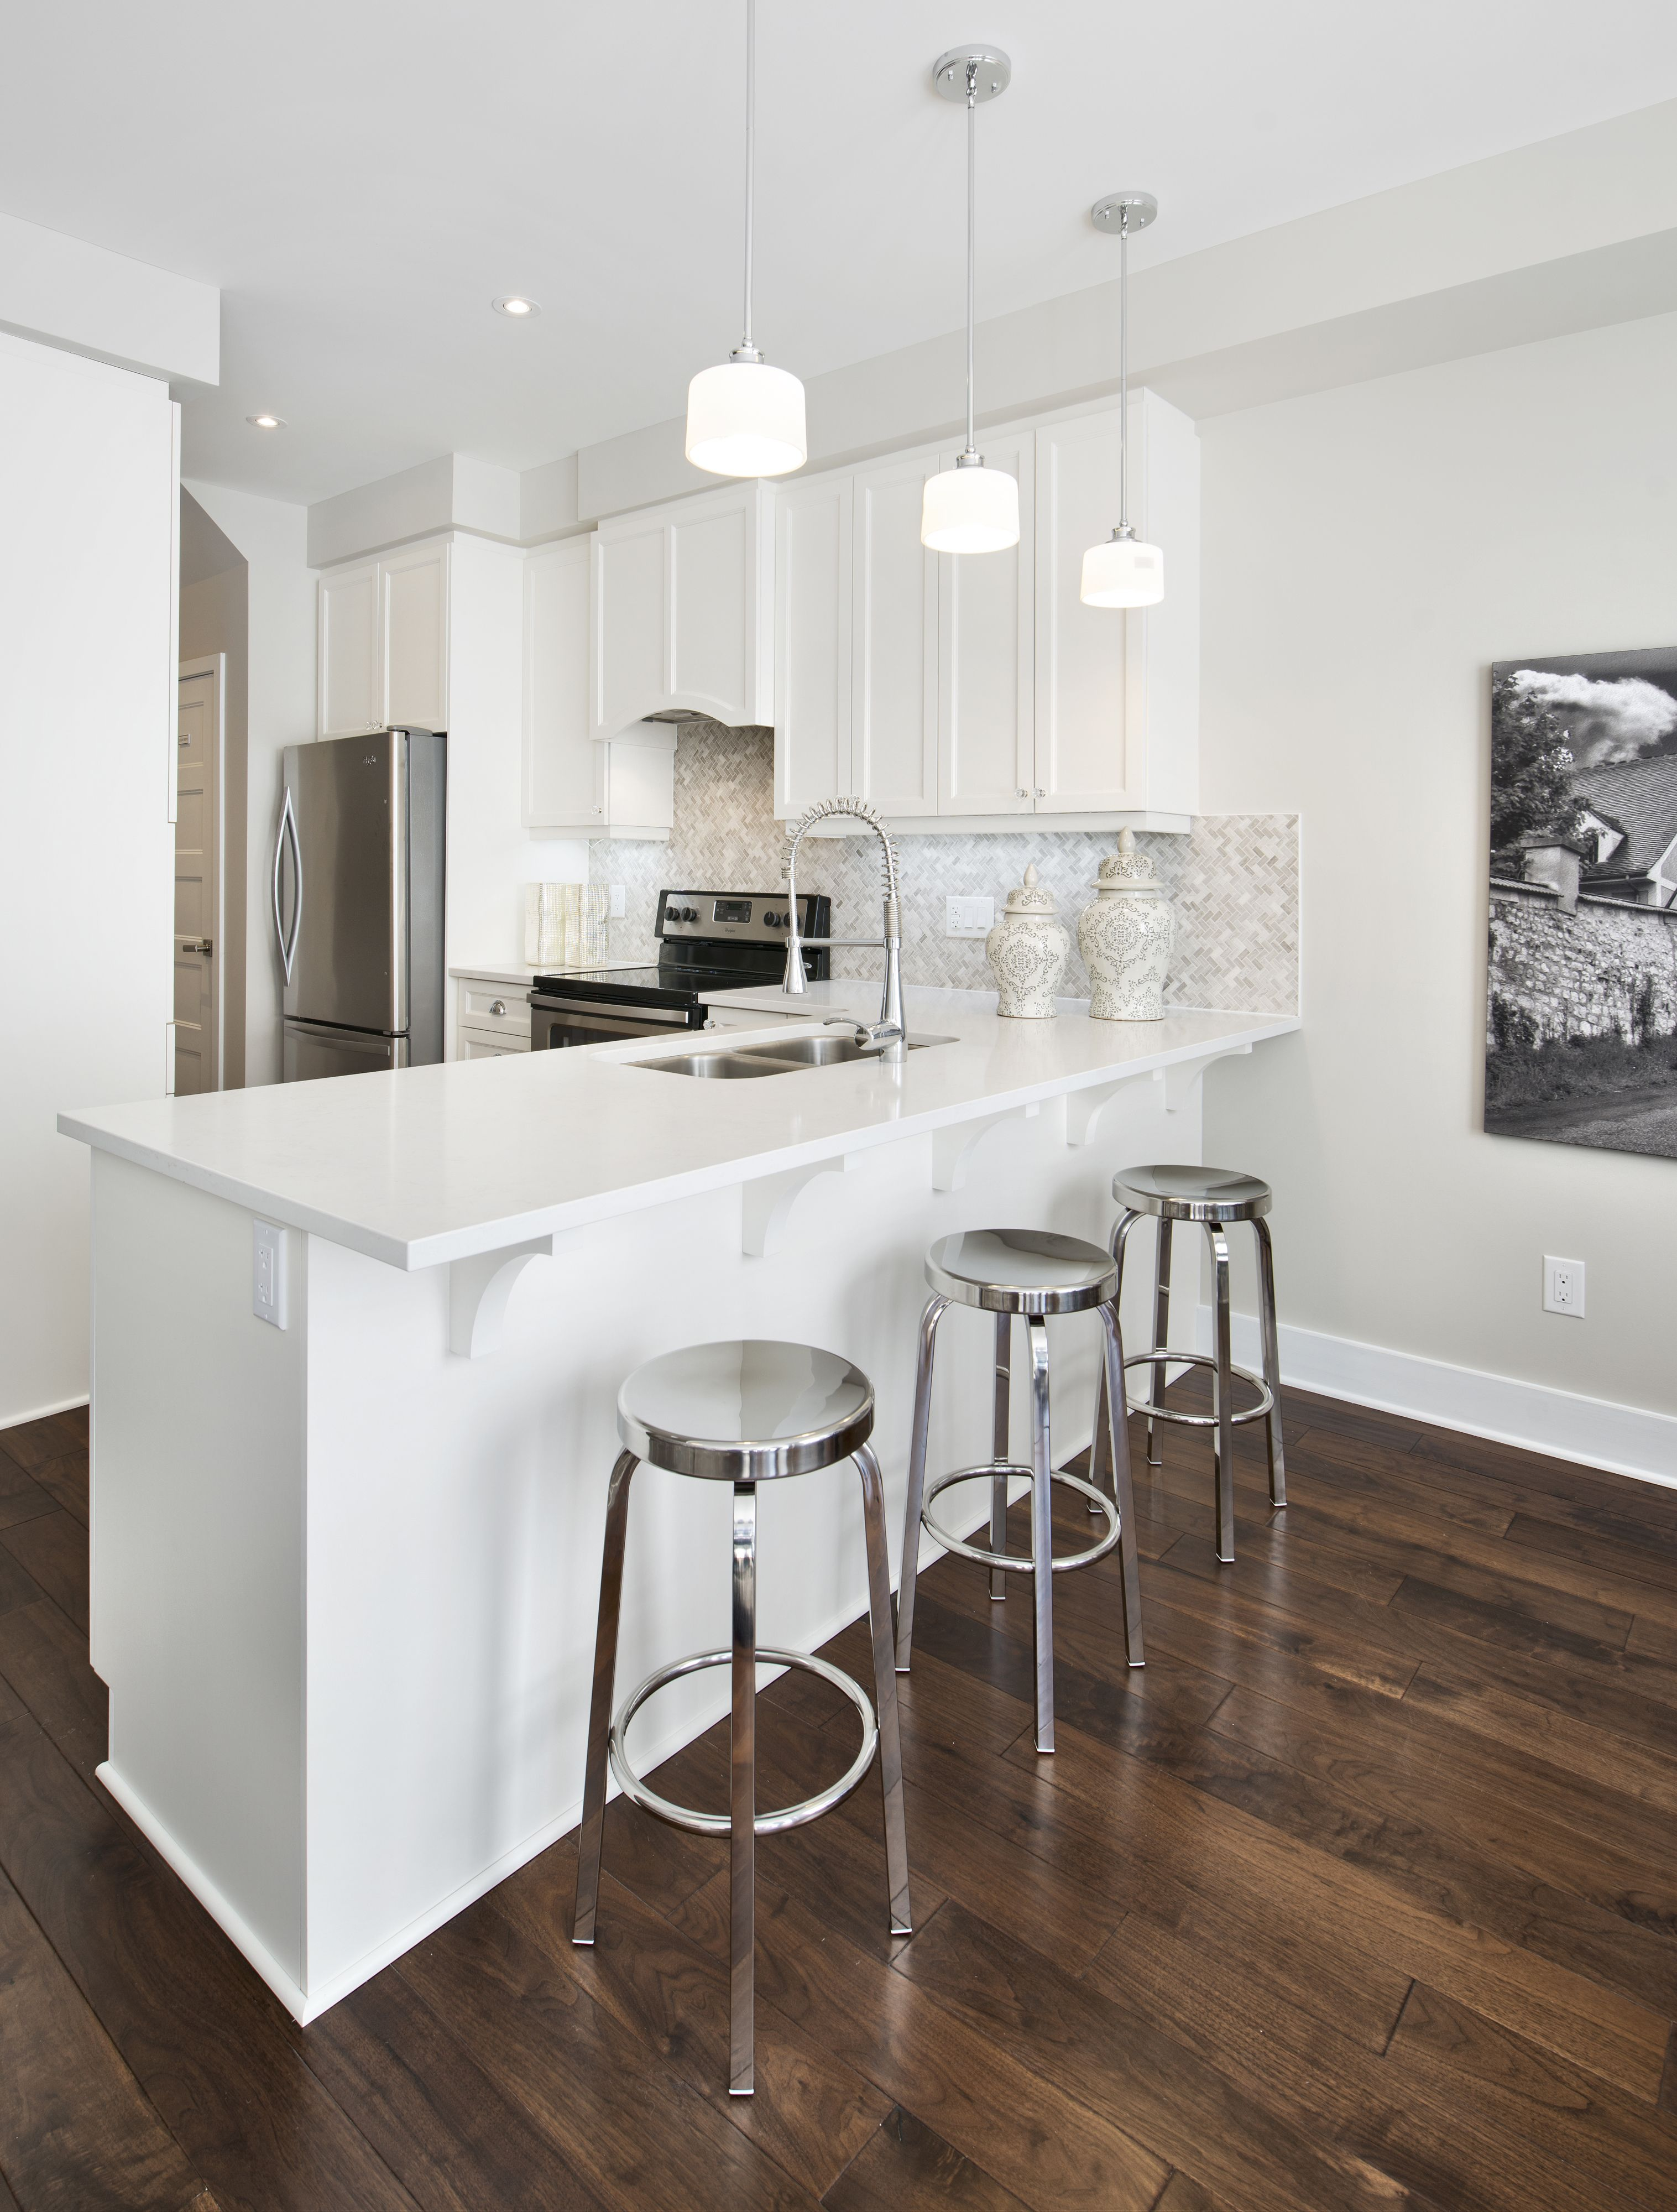 This Is The Kitchen Of The Granite Townhome Model Home In